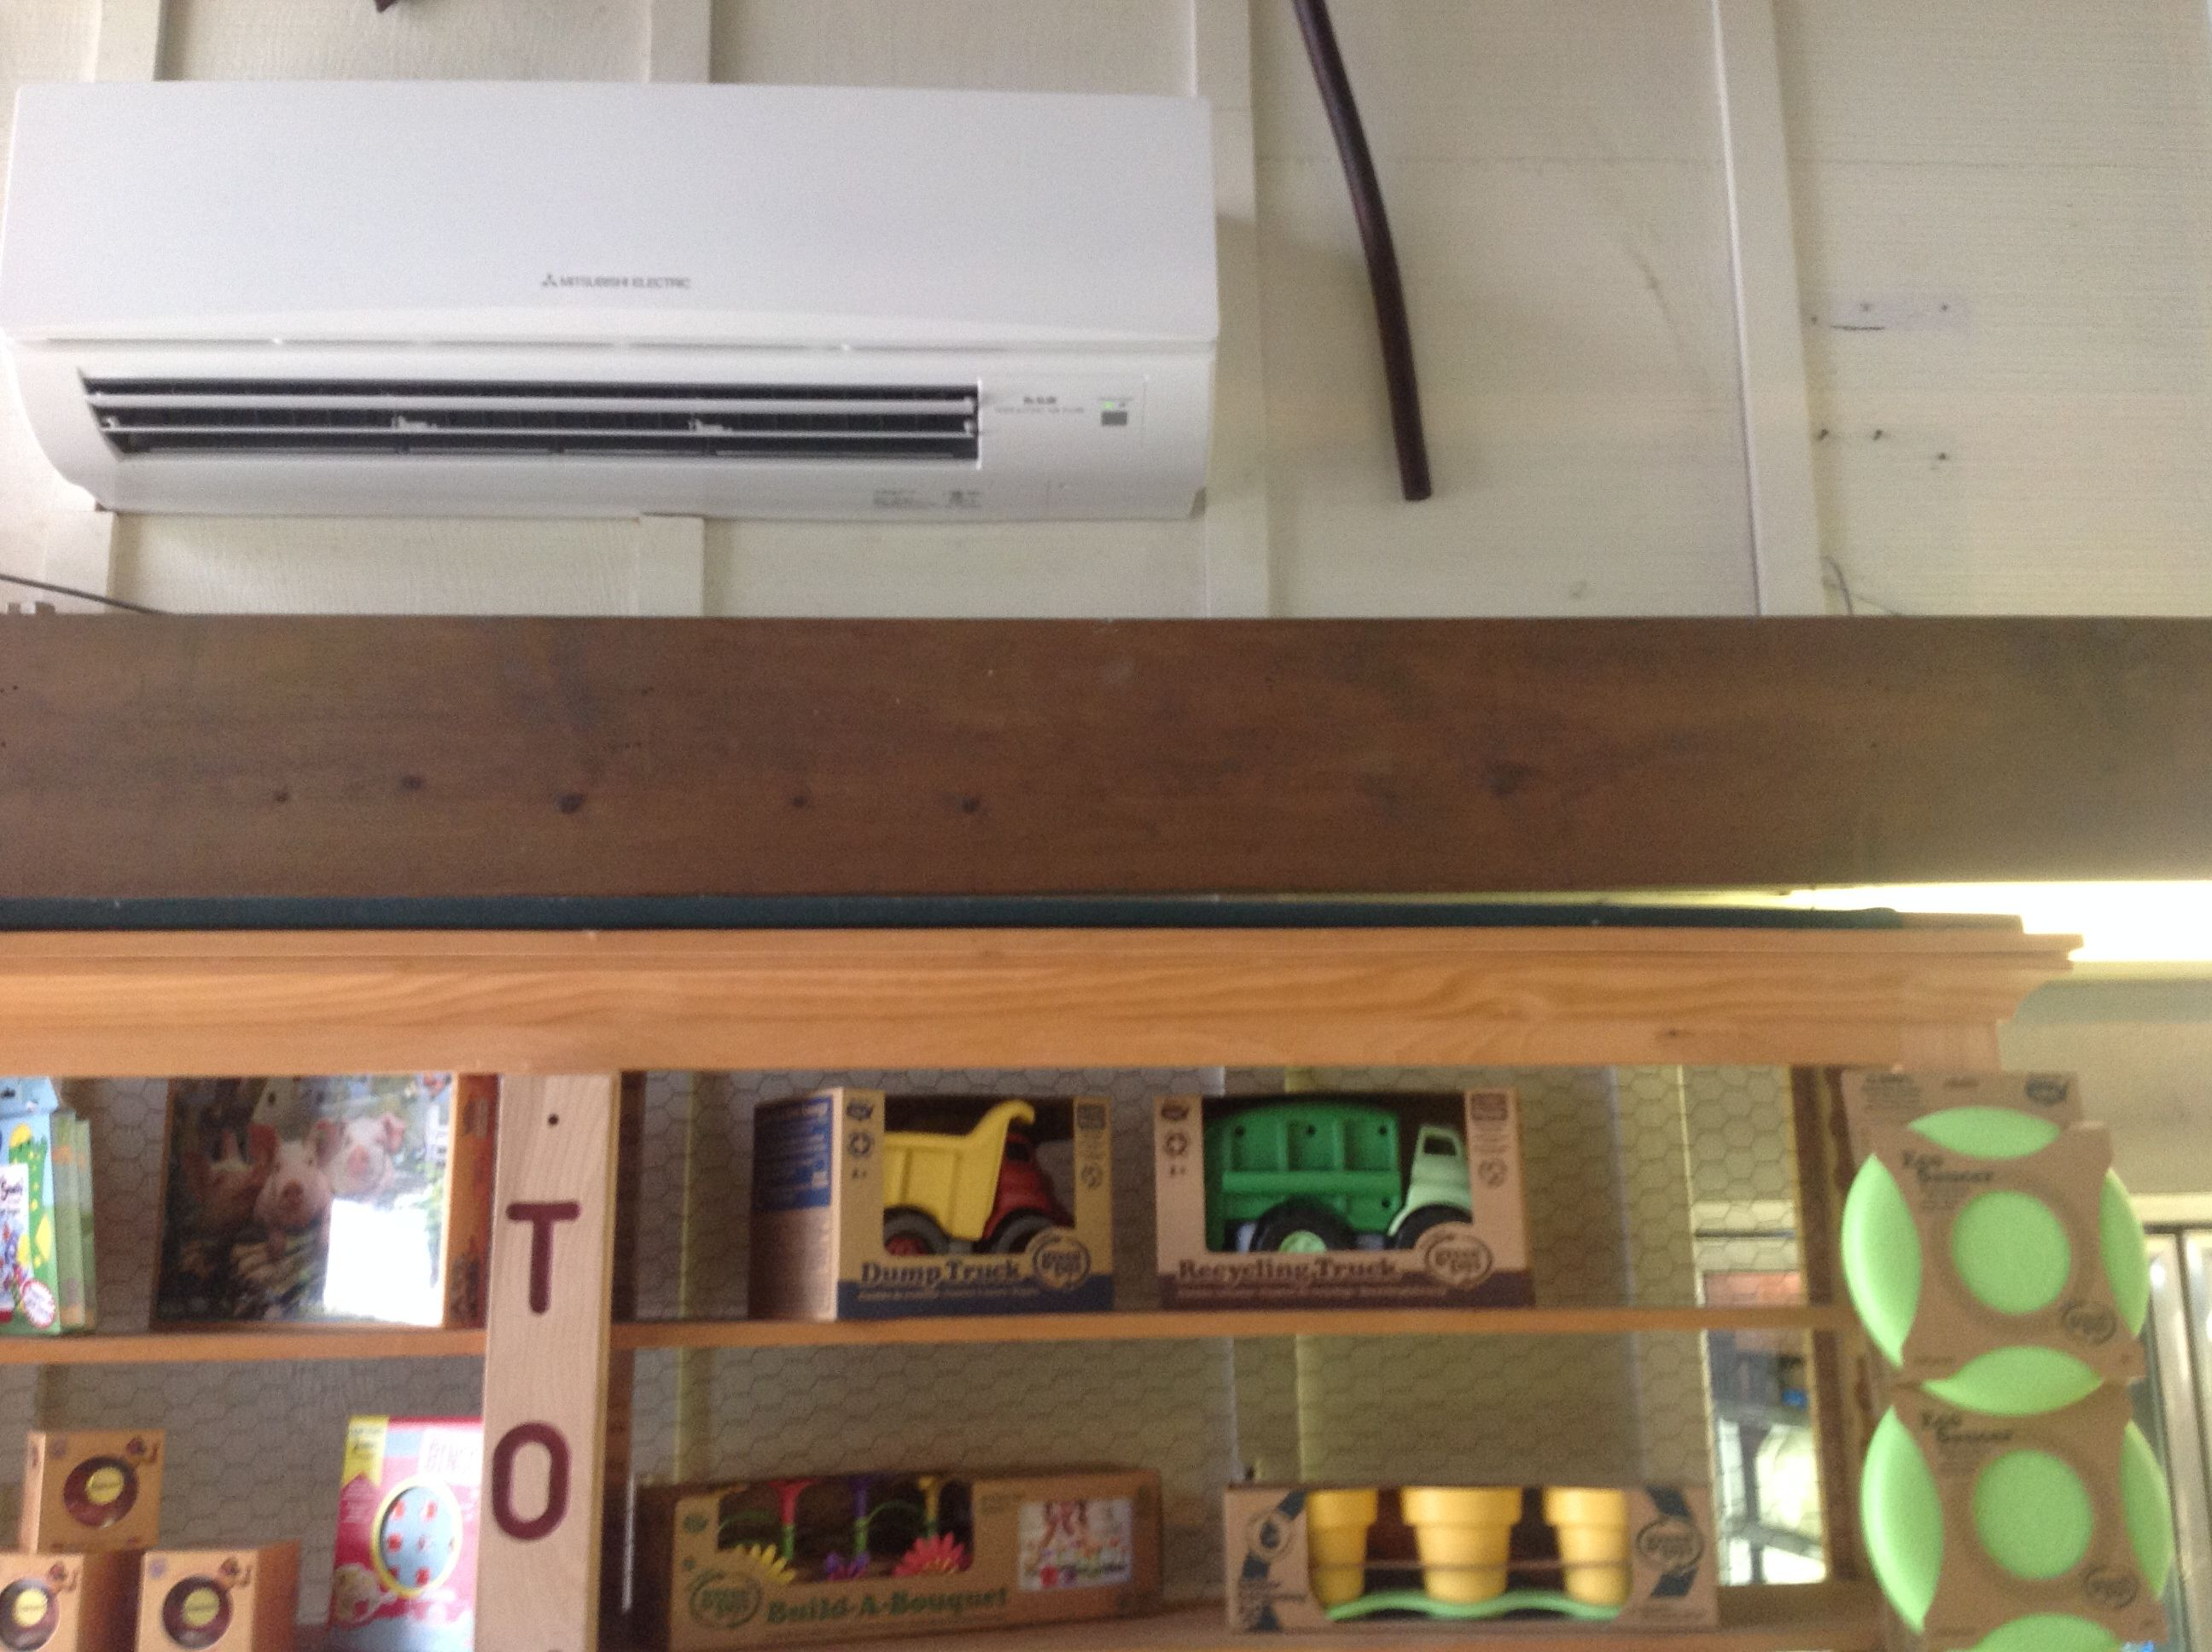 Pin by All Mechanical Service Co. on Mitsubishi Home